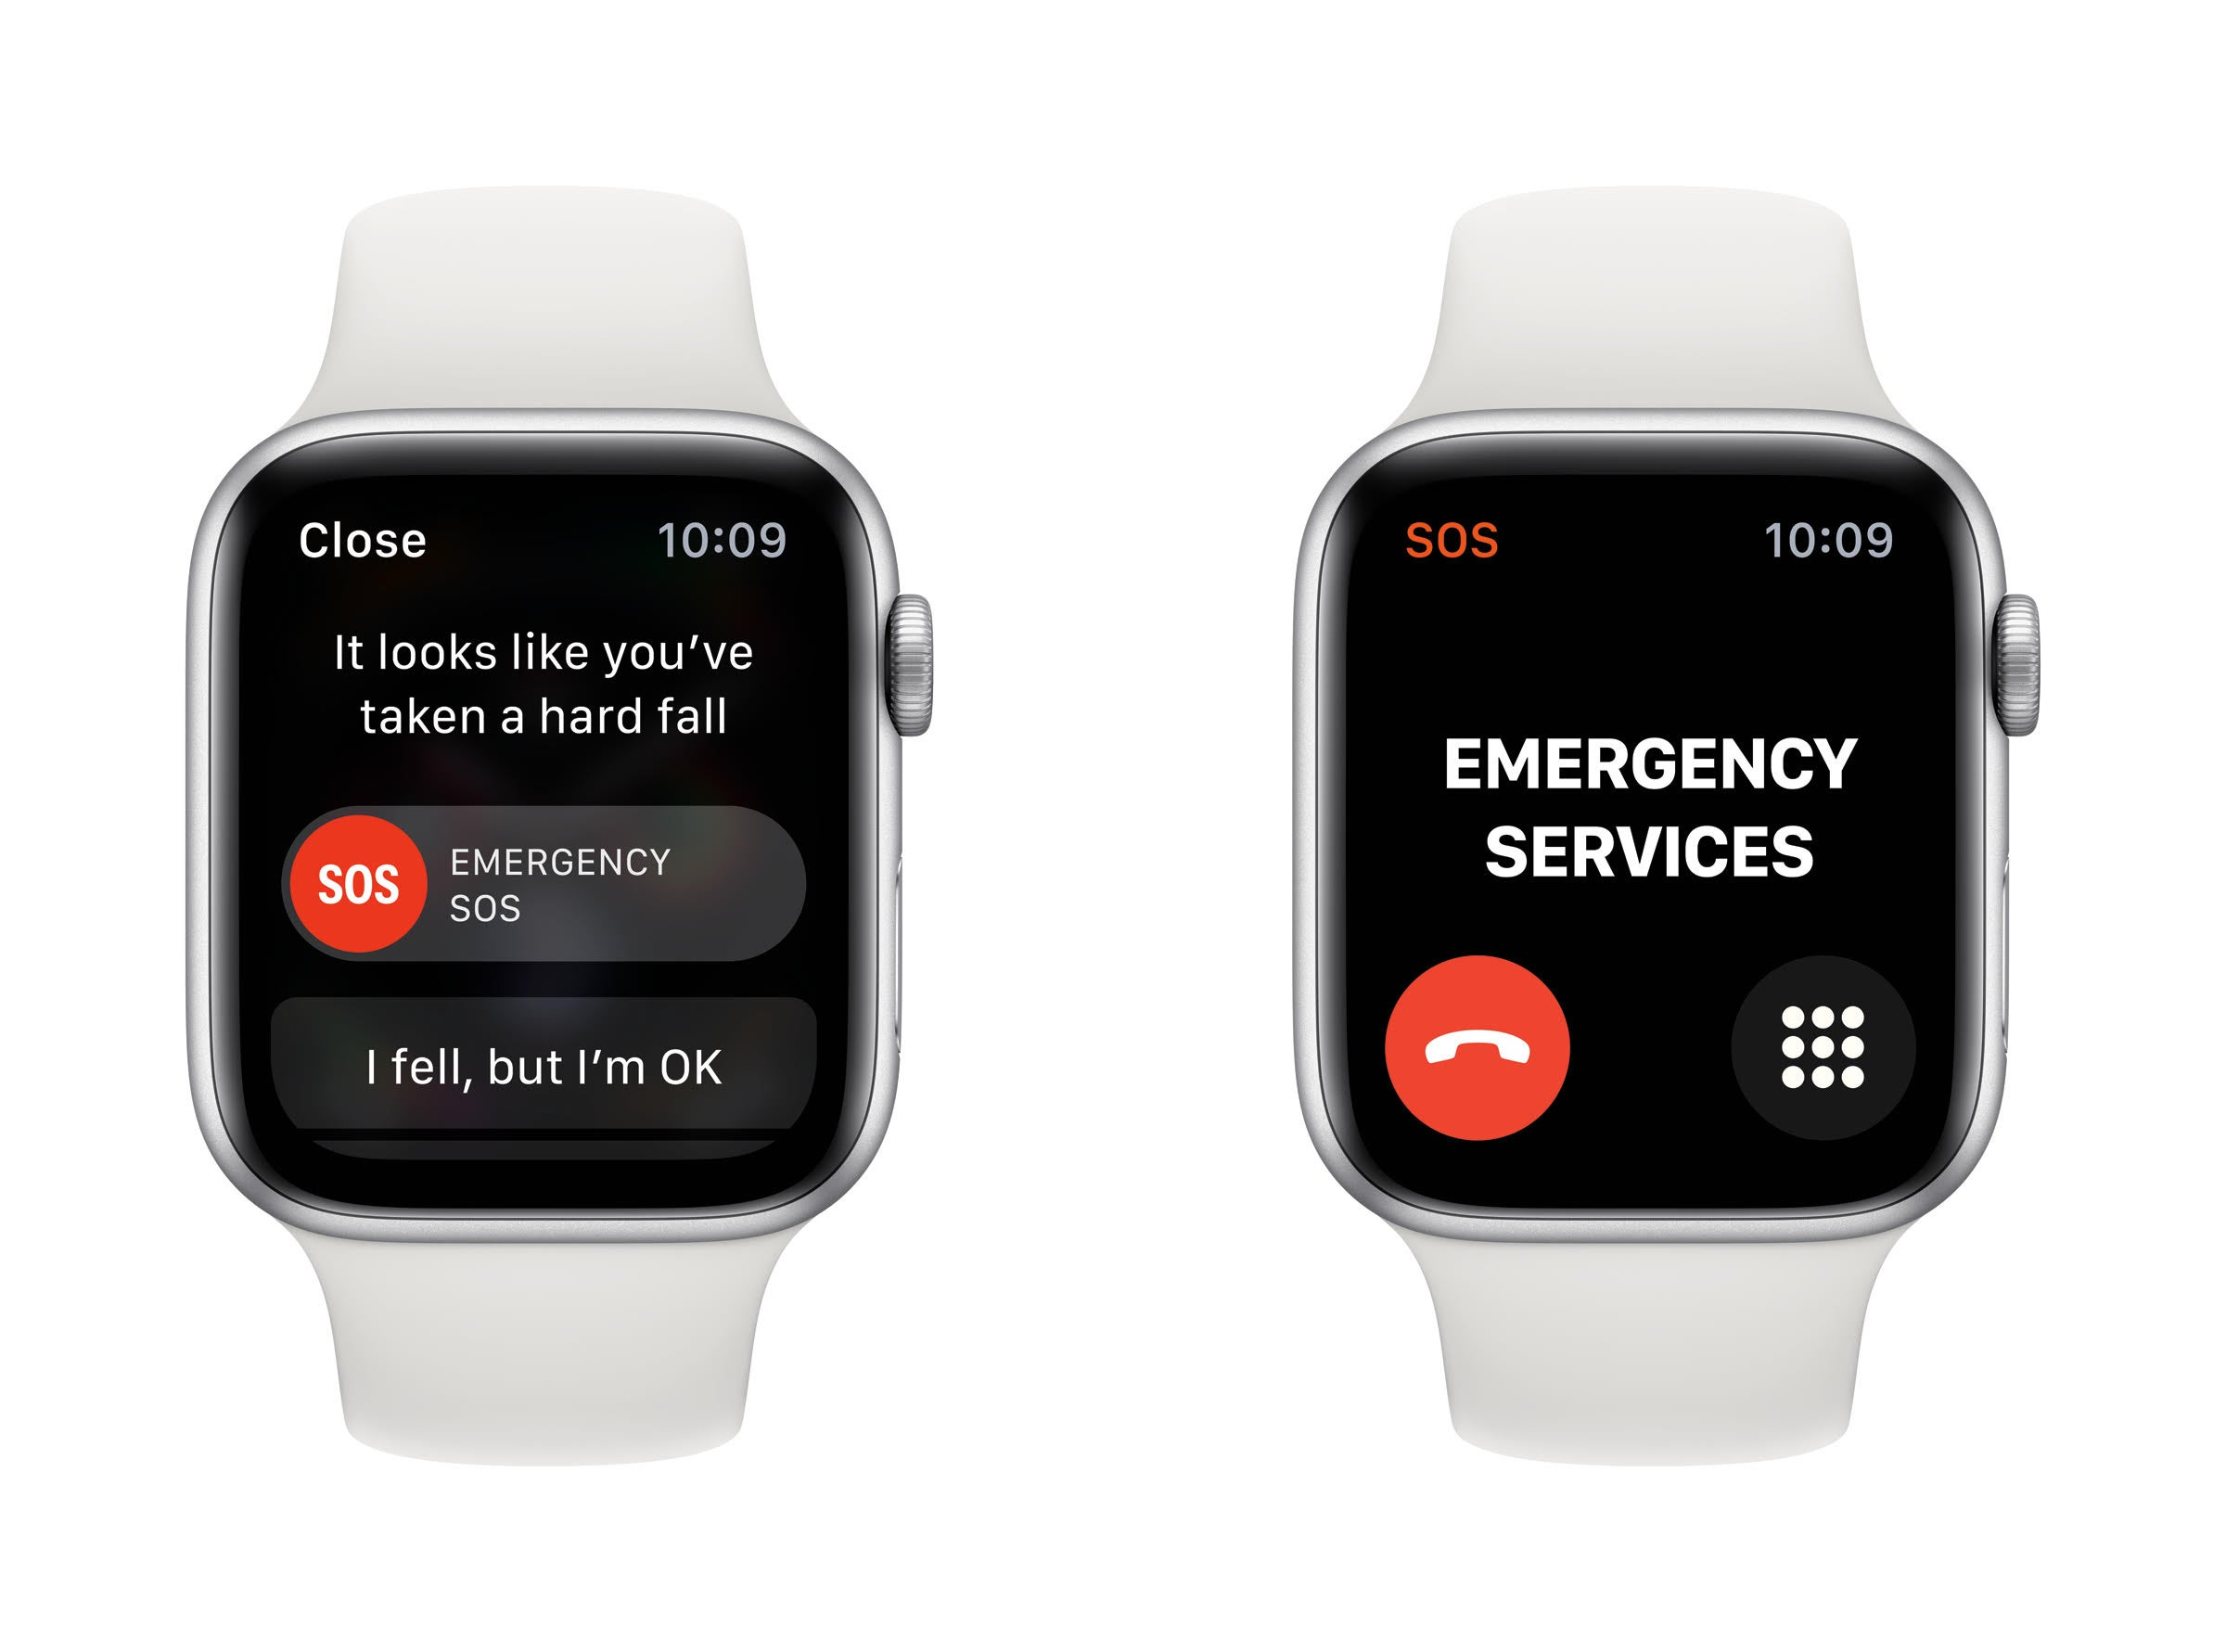 The Apple Watch learned to detect falls using data from real human mishaps